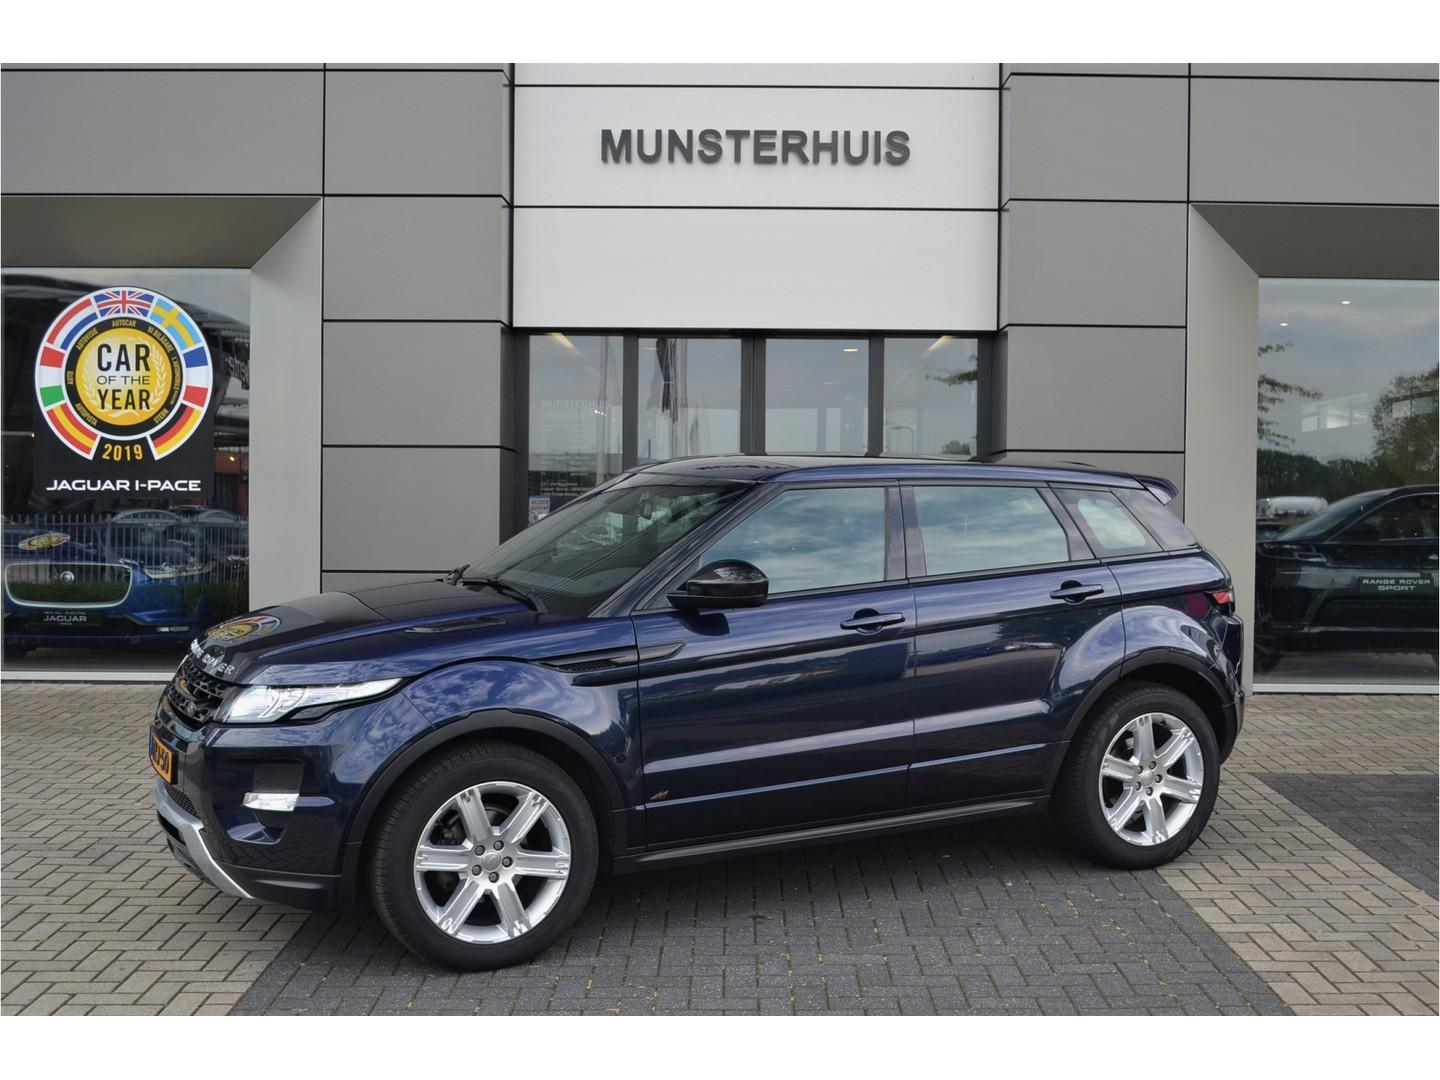 Land rover Range rover evoque 2.2 ed4 2wd dynamic